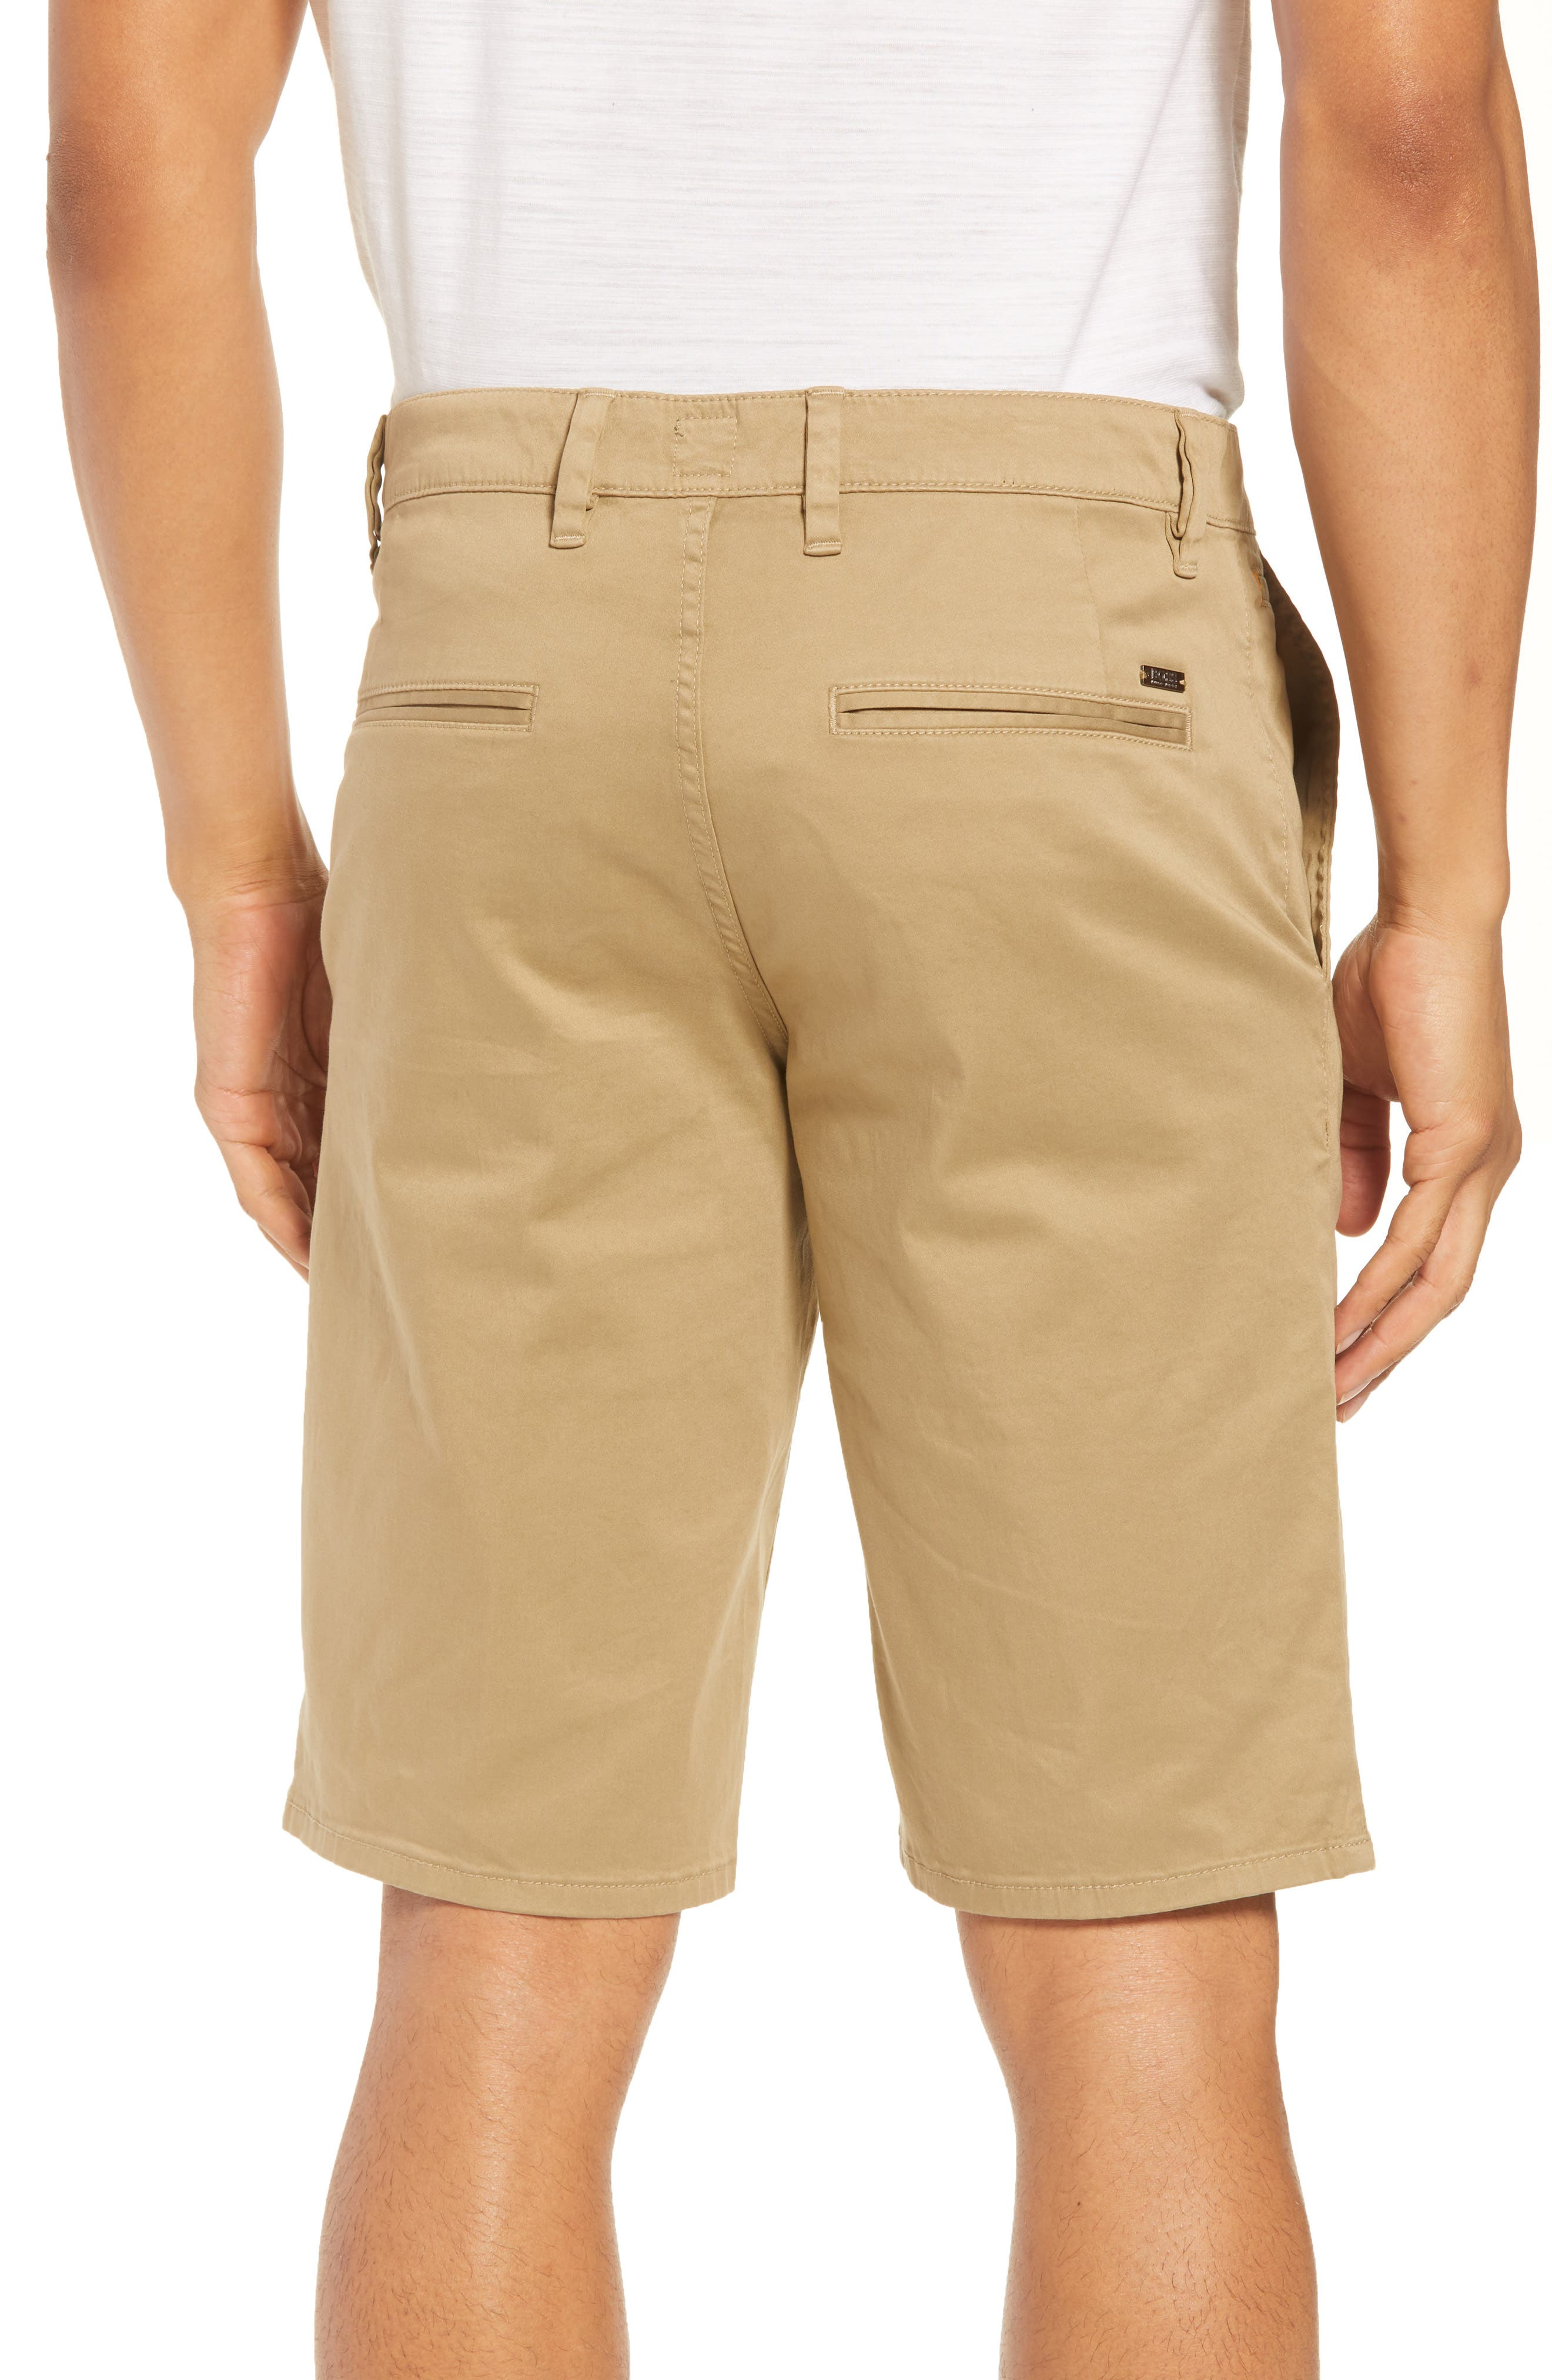 Slim Fit Shorts,                             Alternate thumbnail 2, color,                             Brown